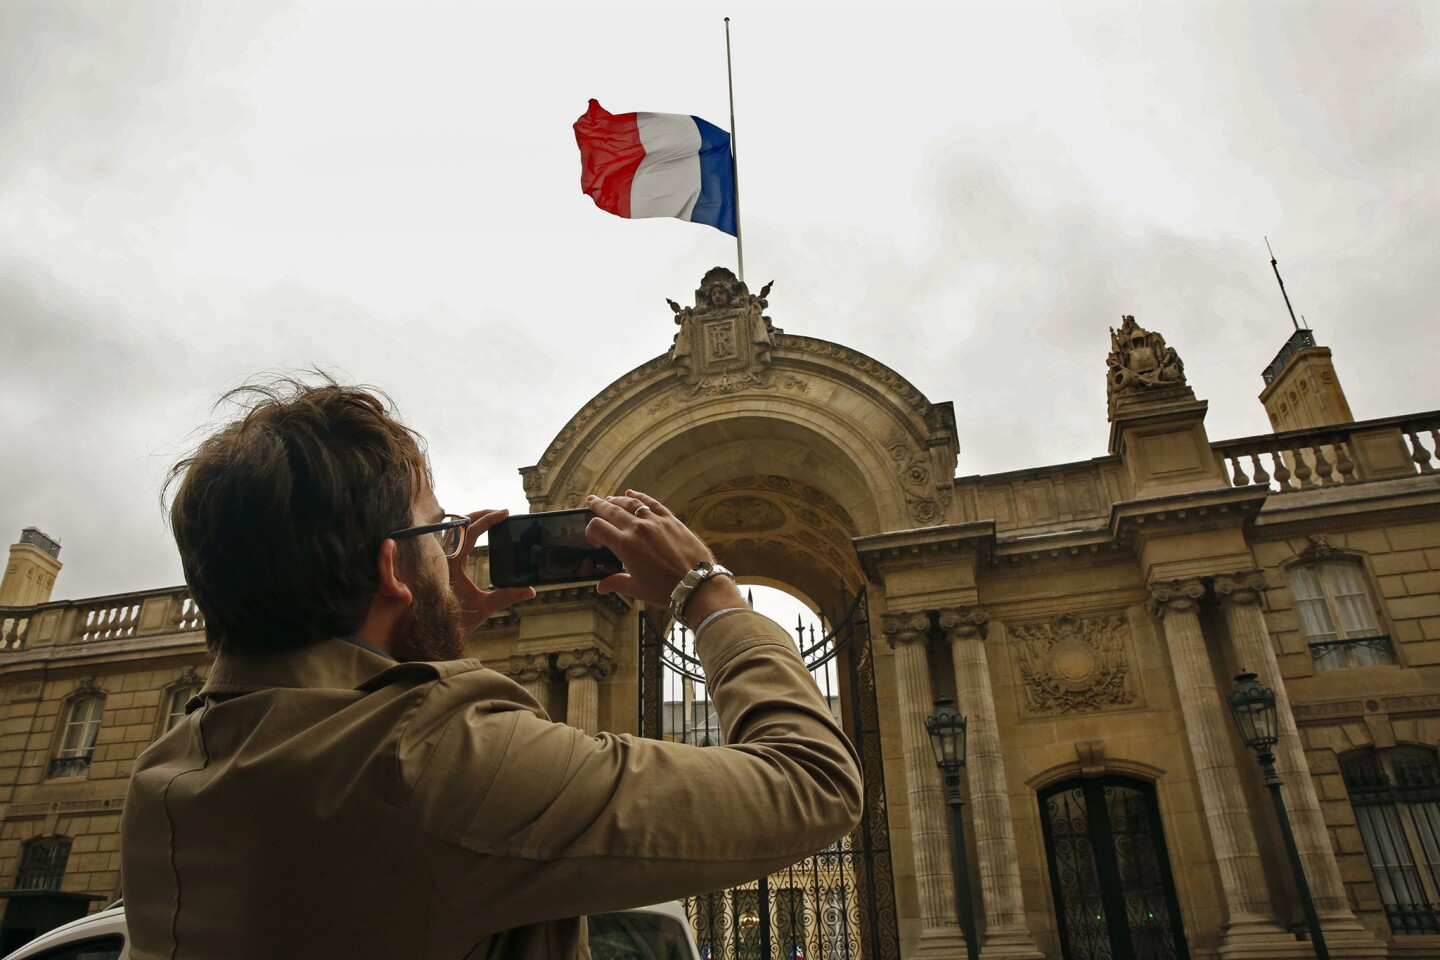 Sylvain Perriot stops to take a picture of the flag at half mast above the Presidential Palace in Paris. France's Sate of Emergency will continue, with flags at half mast.